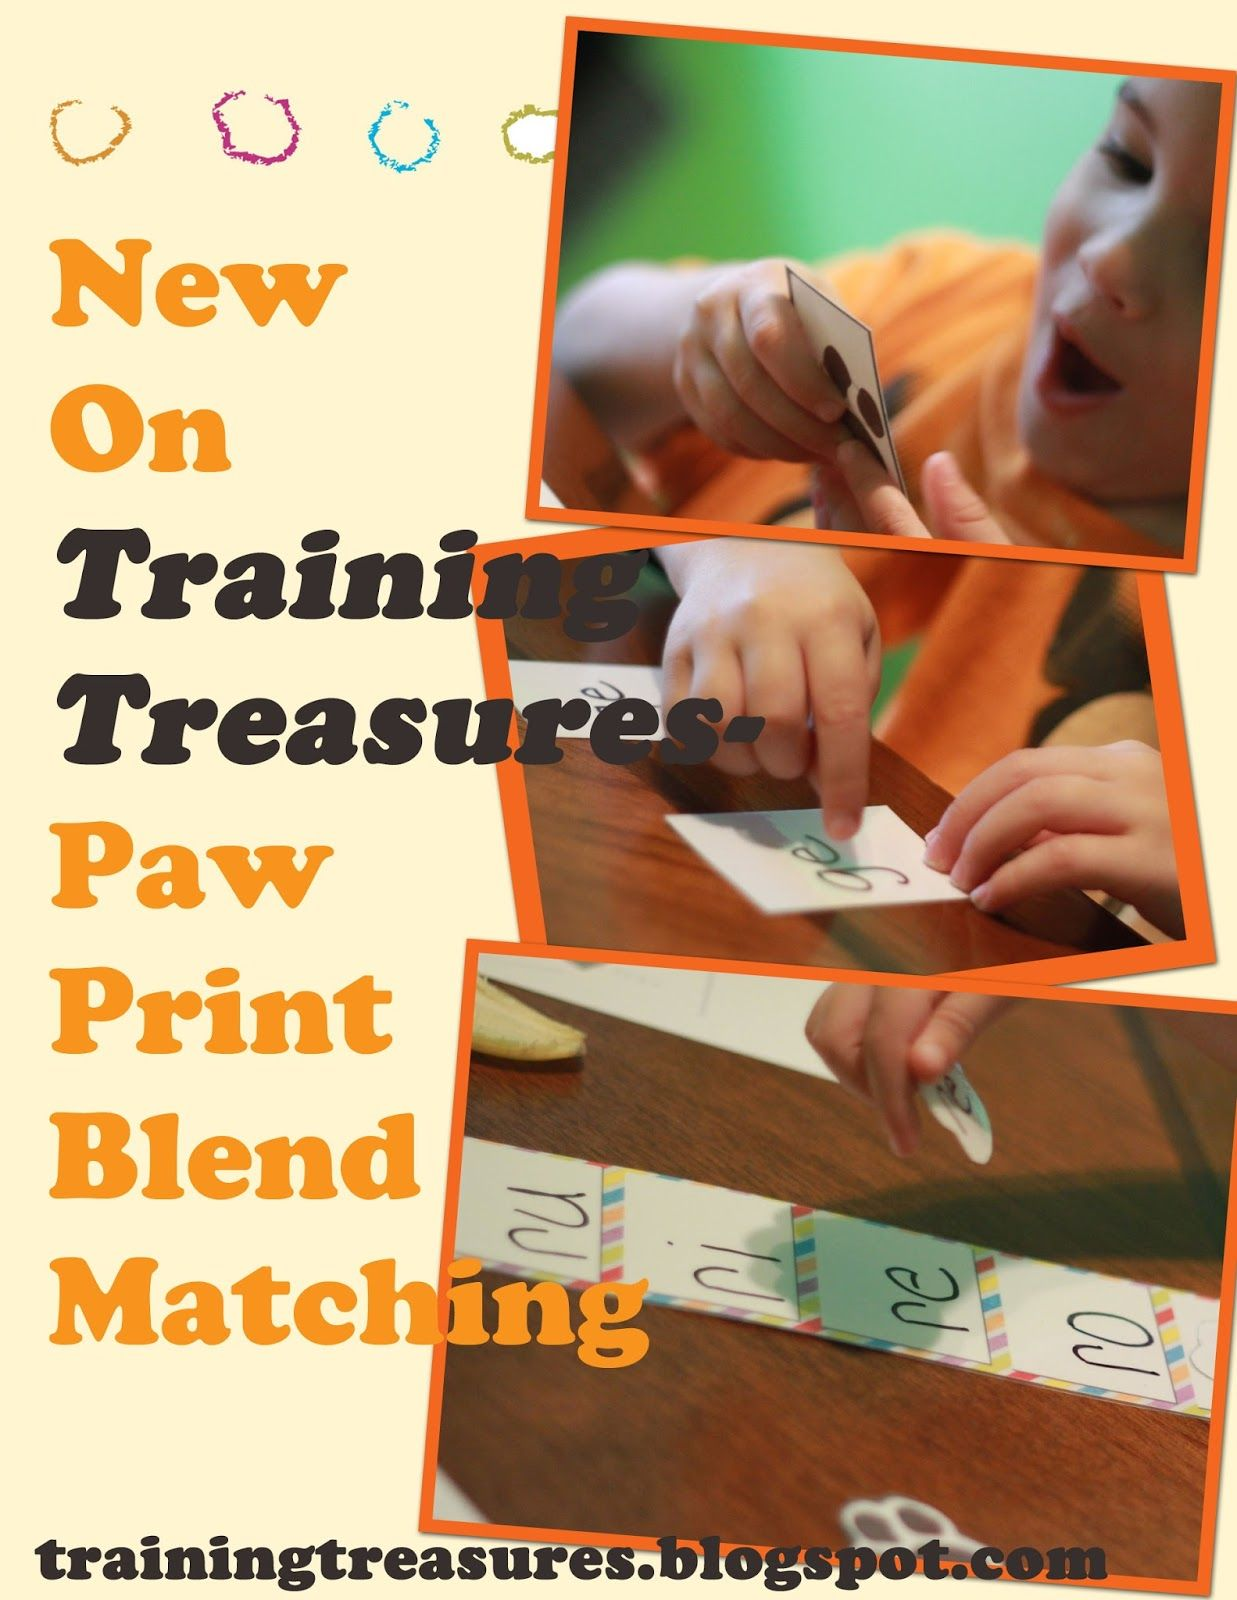 Training Treasures Paw Print Blend Matching